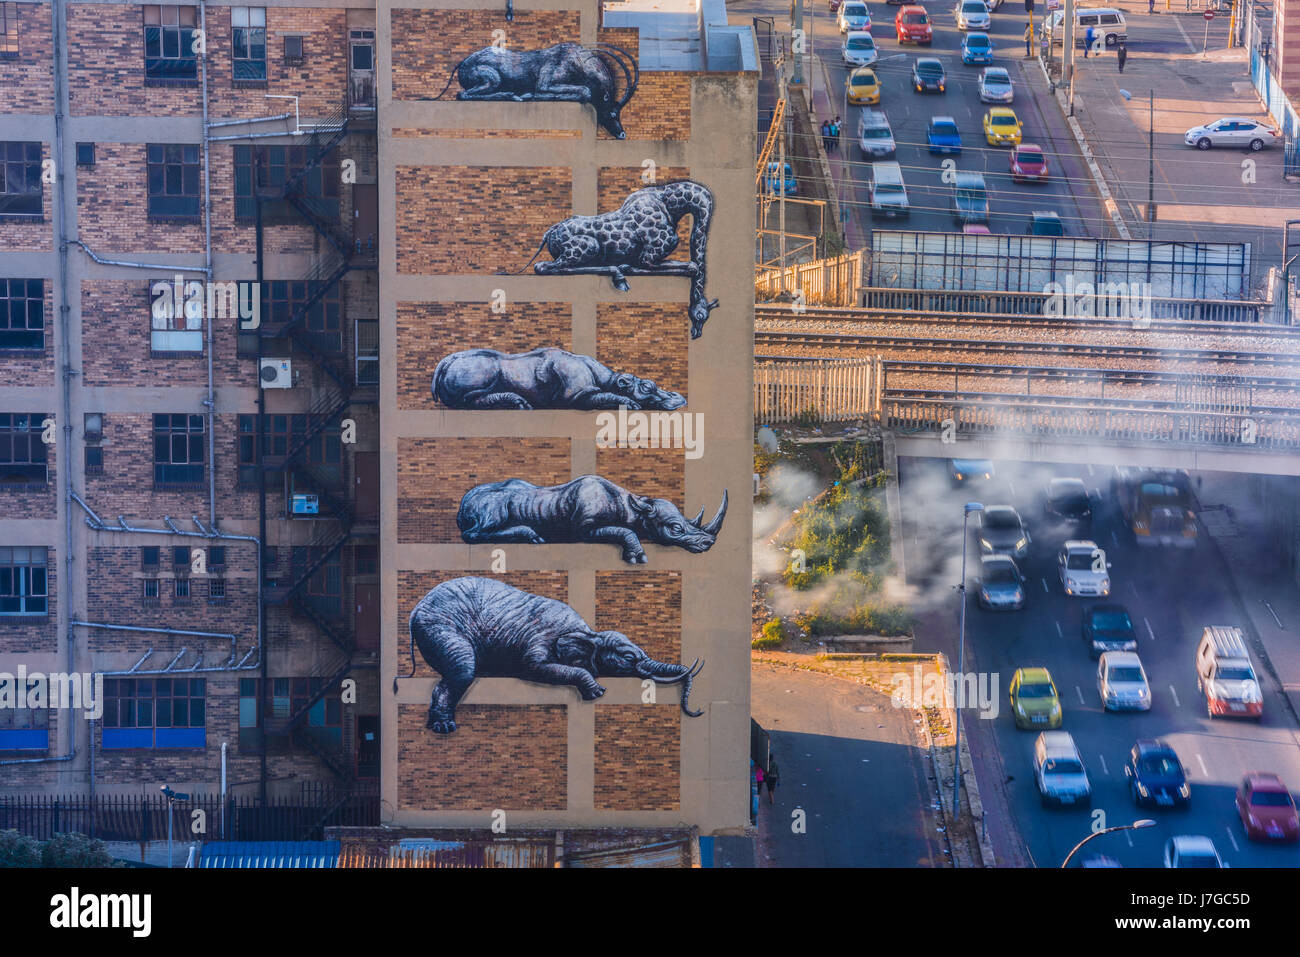 Public art as part of a Johannesburg, South Africa, inner city renewal project known as Maboneng - Stock Image